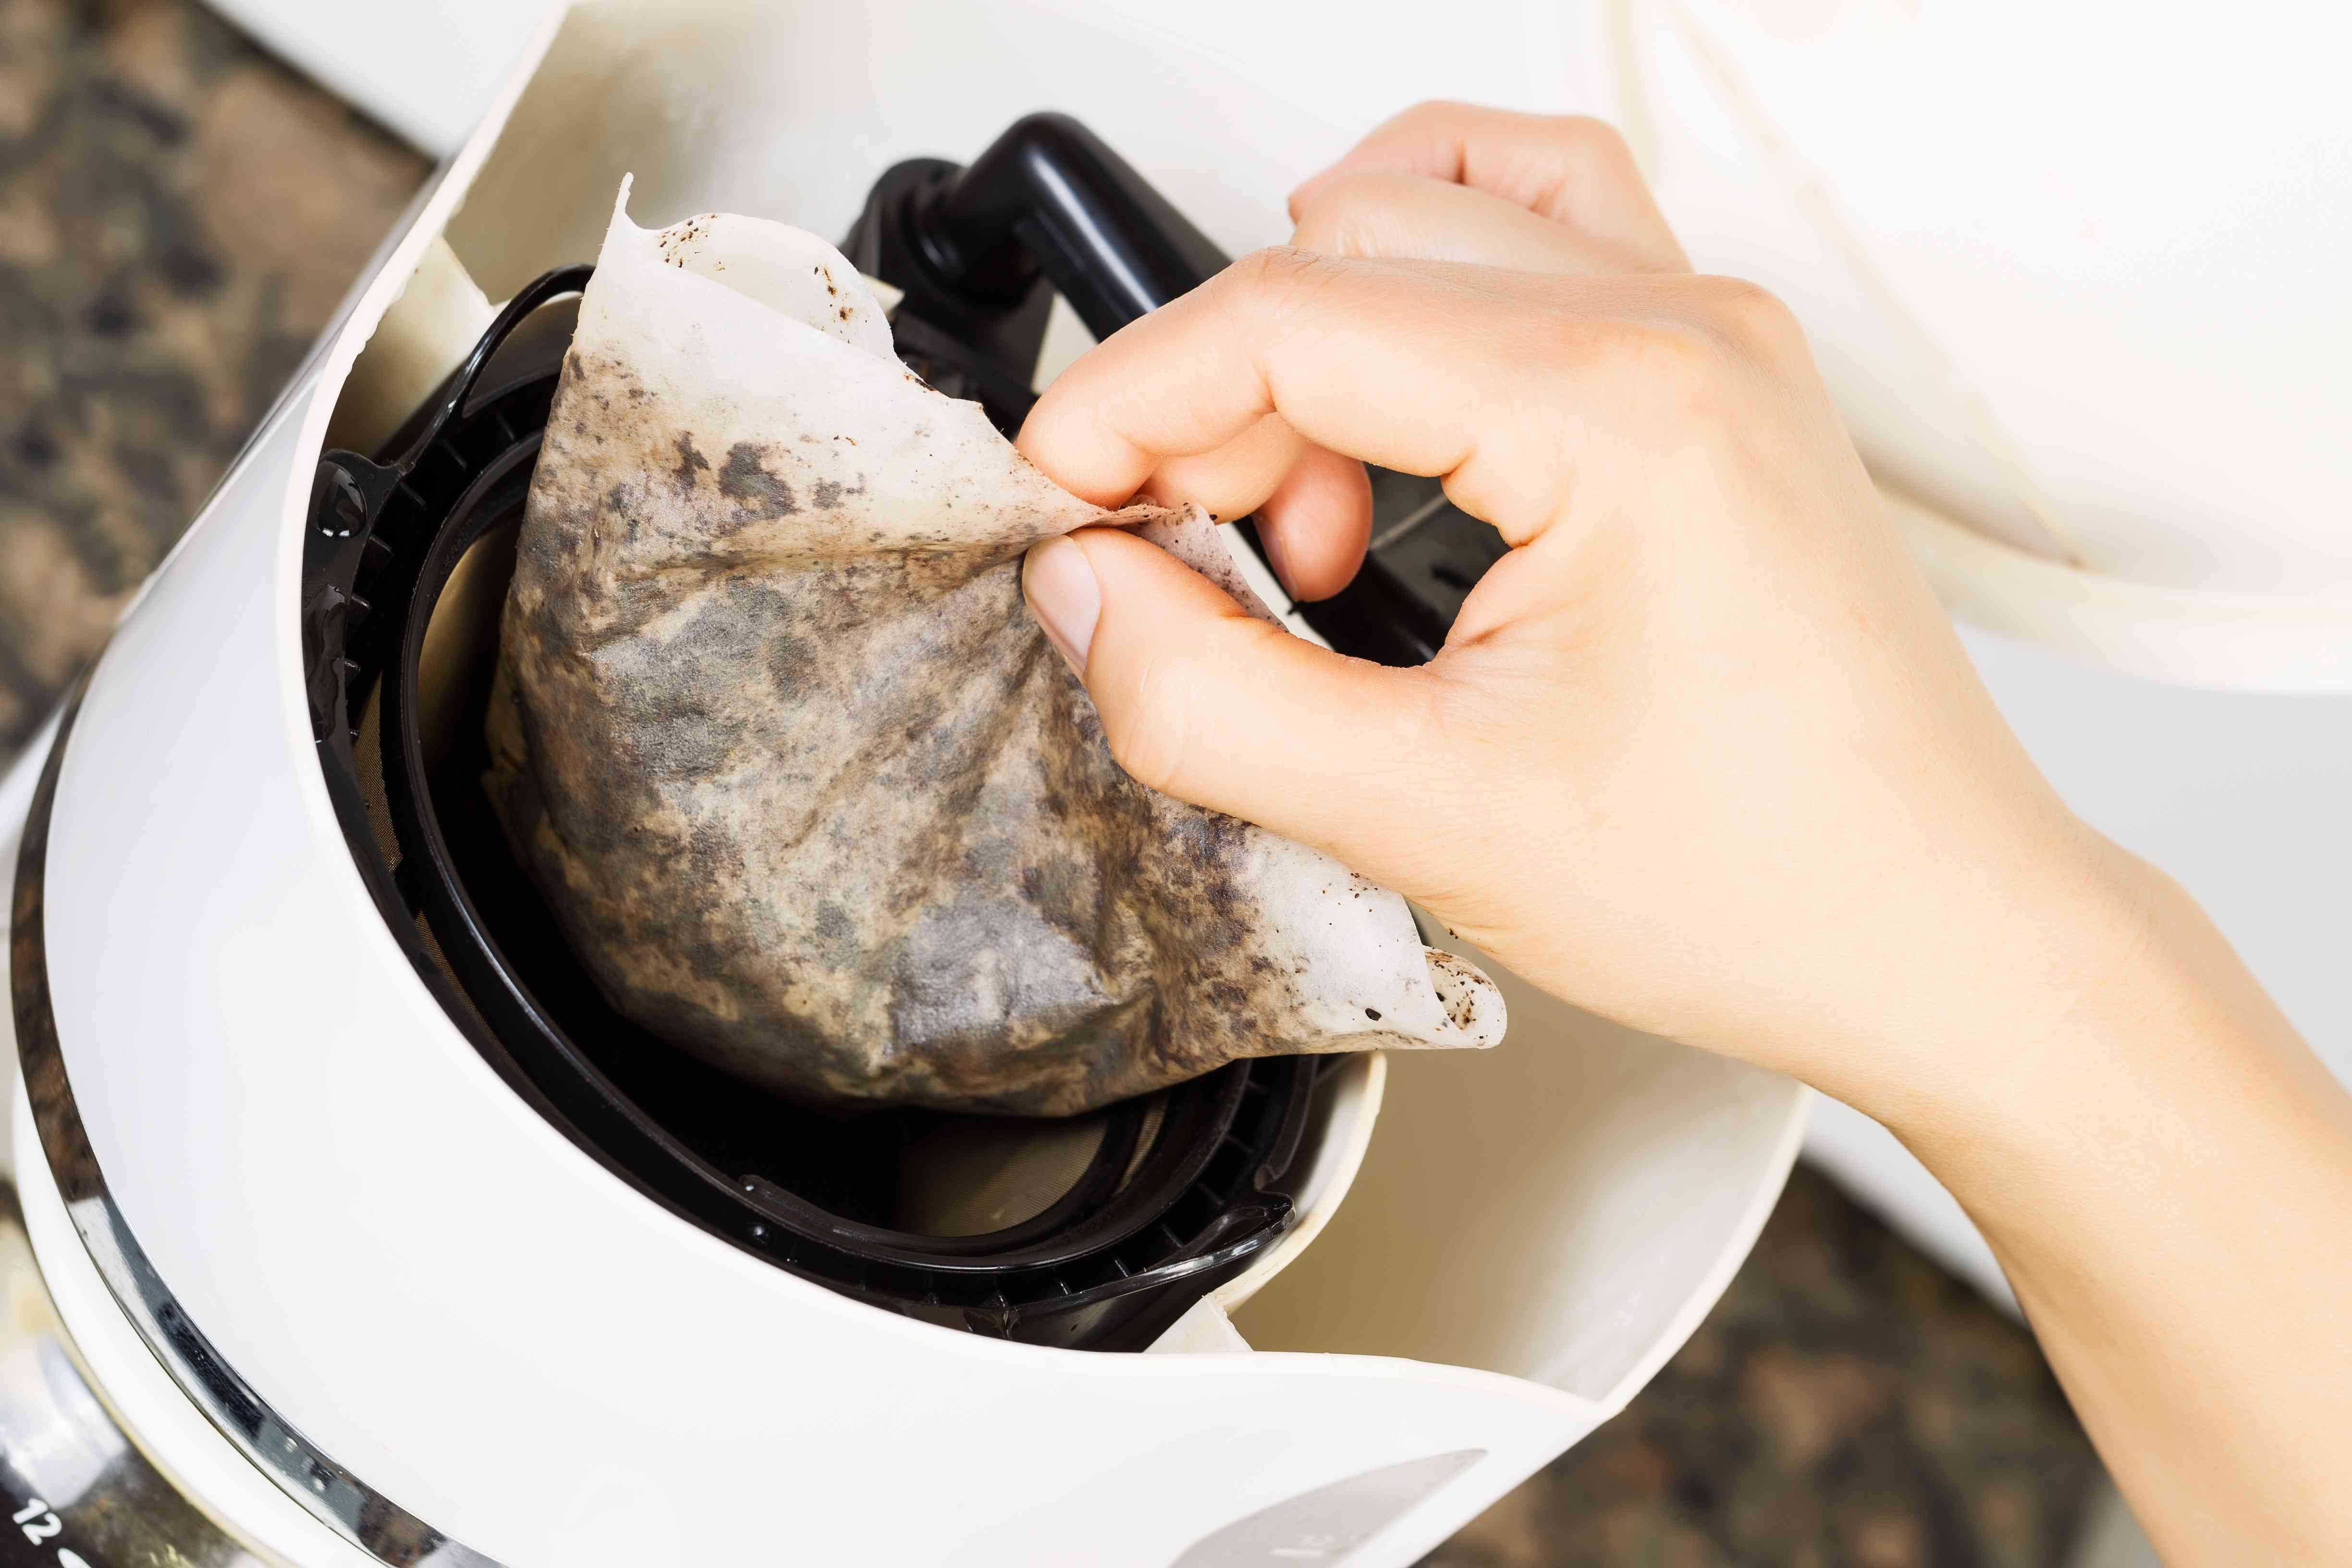 leftover coffee grounds